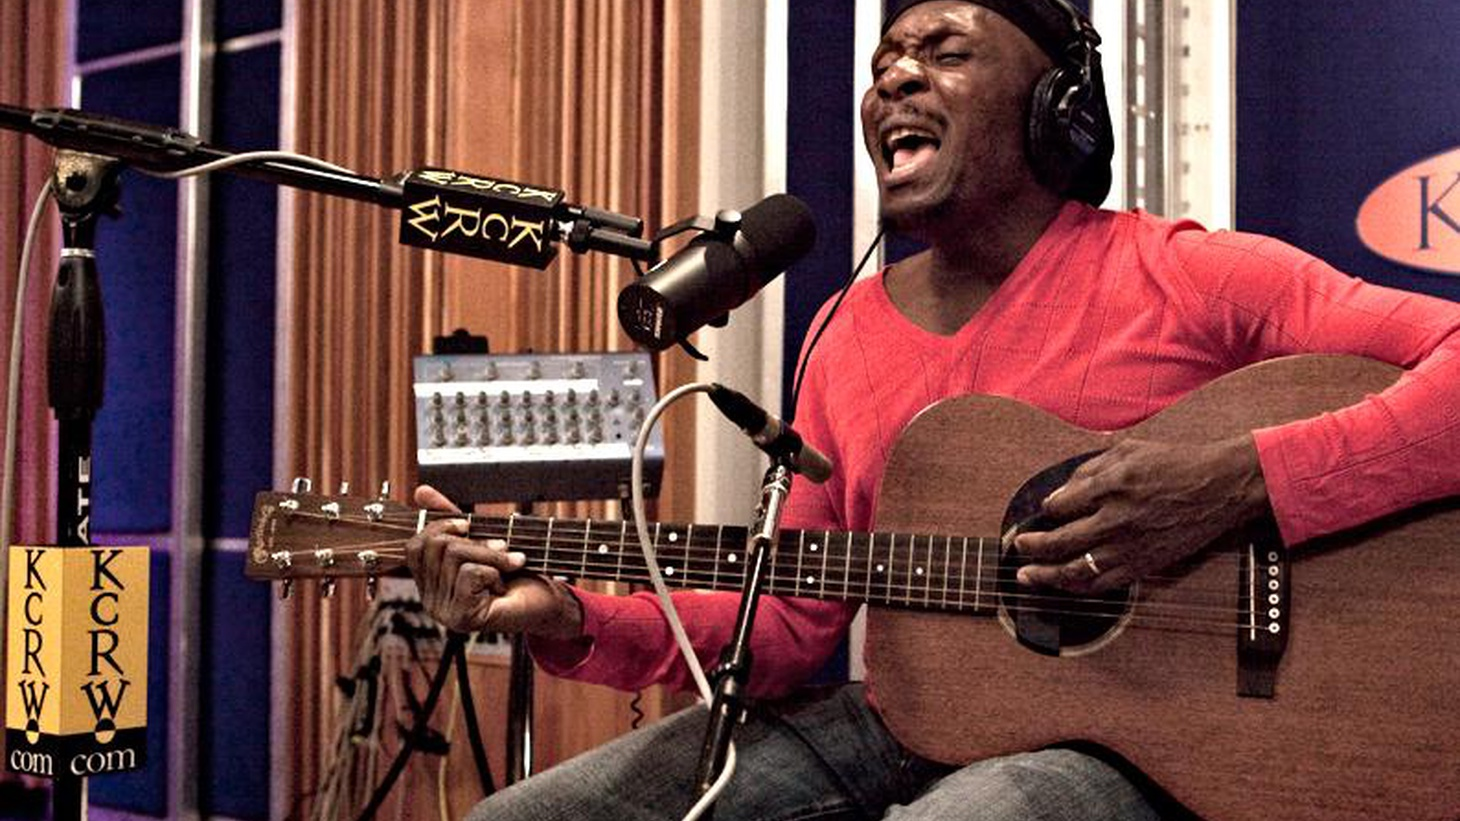 Reggae legend Jimmy Cliff joins us for an intimate performance...